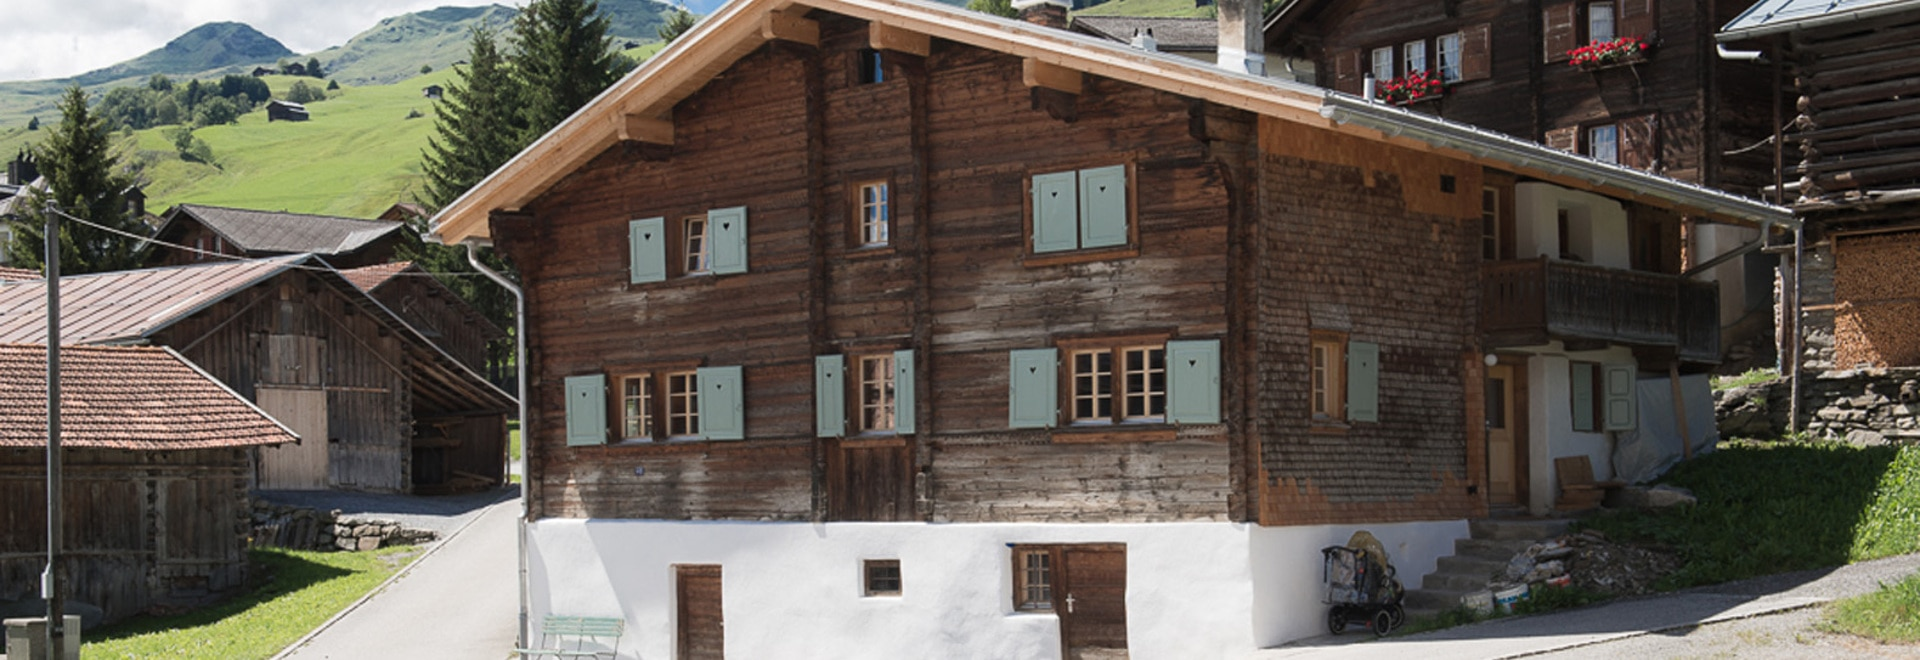 A Traditional Ski Chalet In The Swiss Alps Has Been Transformed Into Two Timber Clad